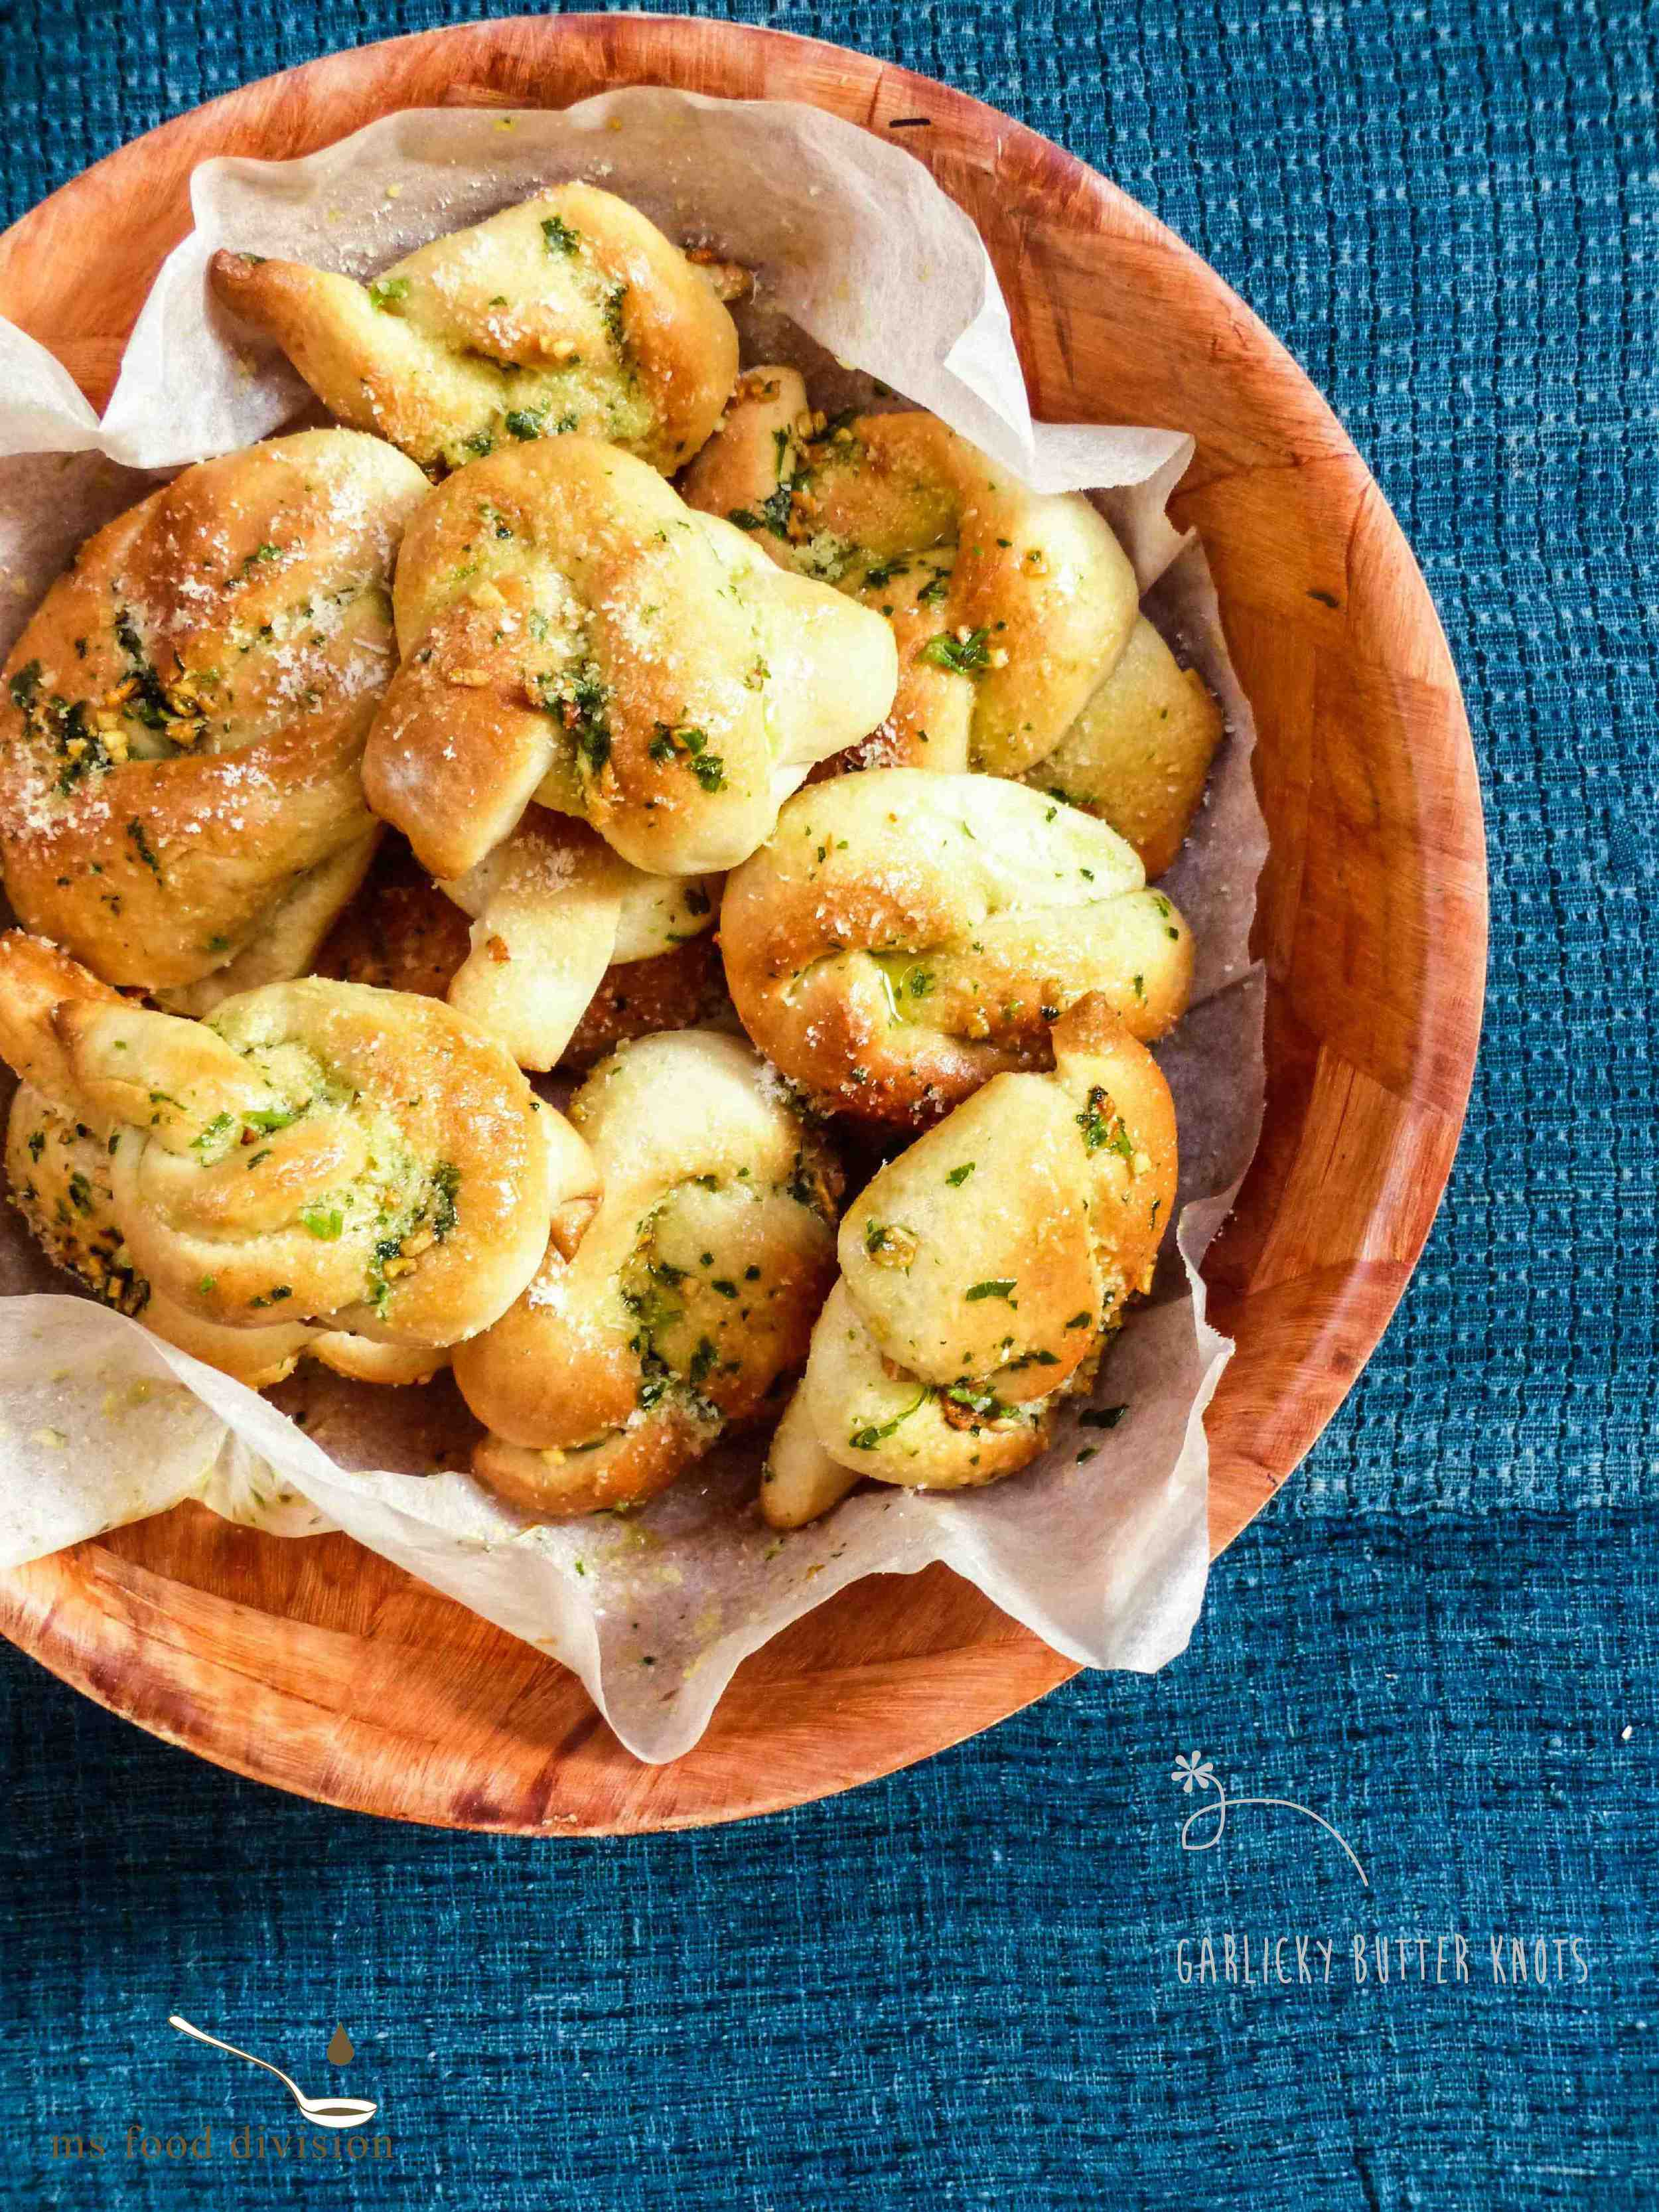 These little garlicky and buttery knots are fairly easy to make. If you love pretzels, then you'll not be disappointed by these knots.